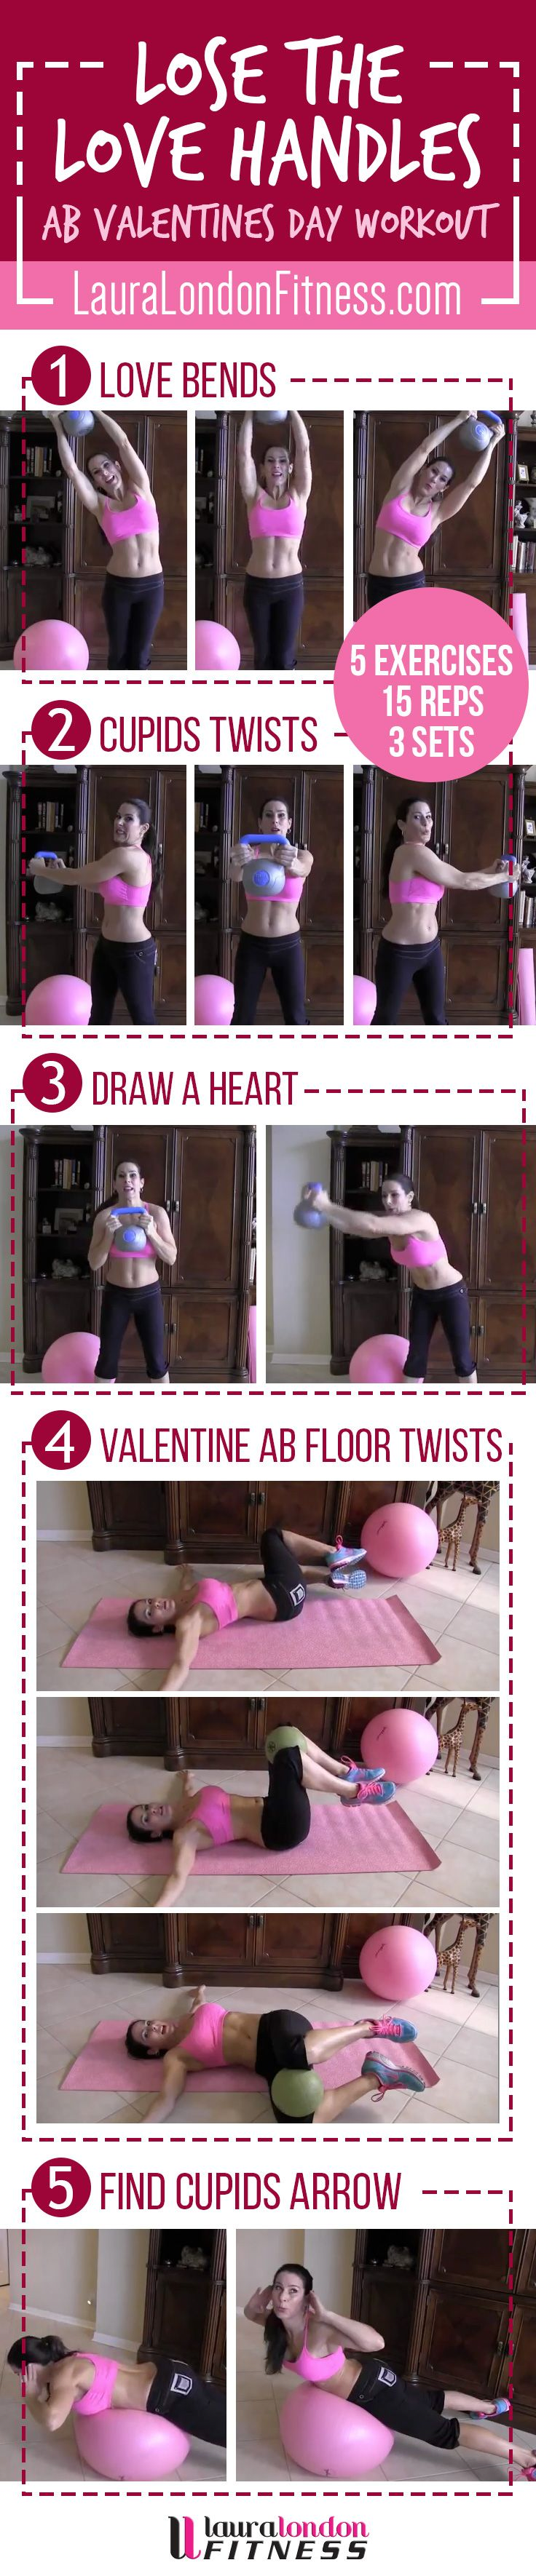 Lose the Love Handles, muffin top what ever you call that extra weight around your middle. Lets crush it with this workout. Share and Re-PIn too. Full video here: www.youtube.com/... #fitness #homeworkouts #lauralondonfitness